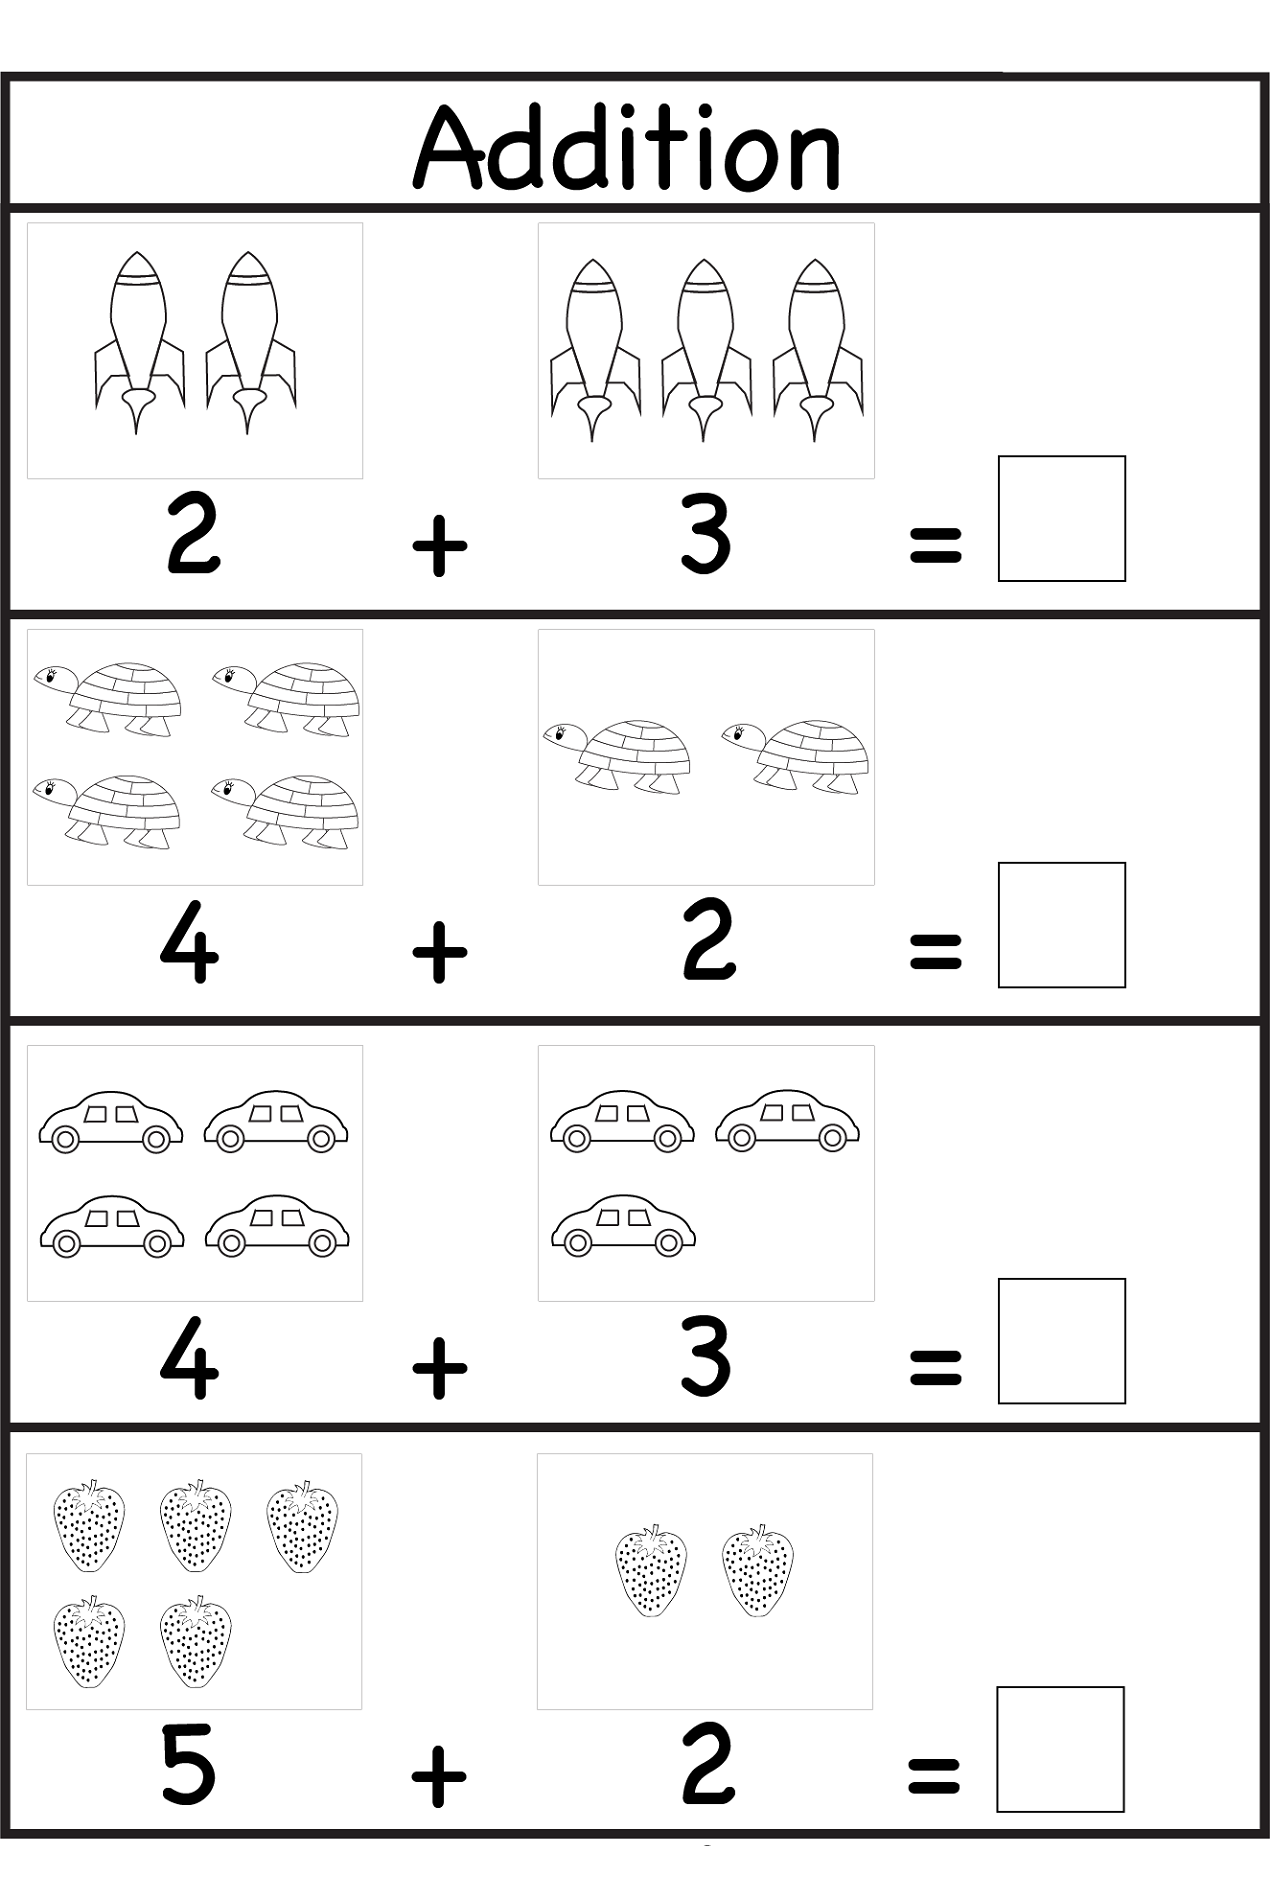 activity sheets for 4 year olds 5